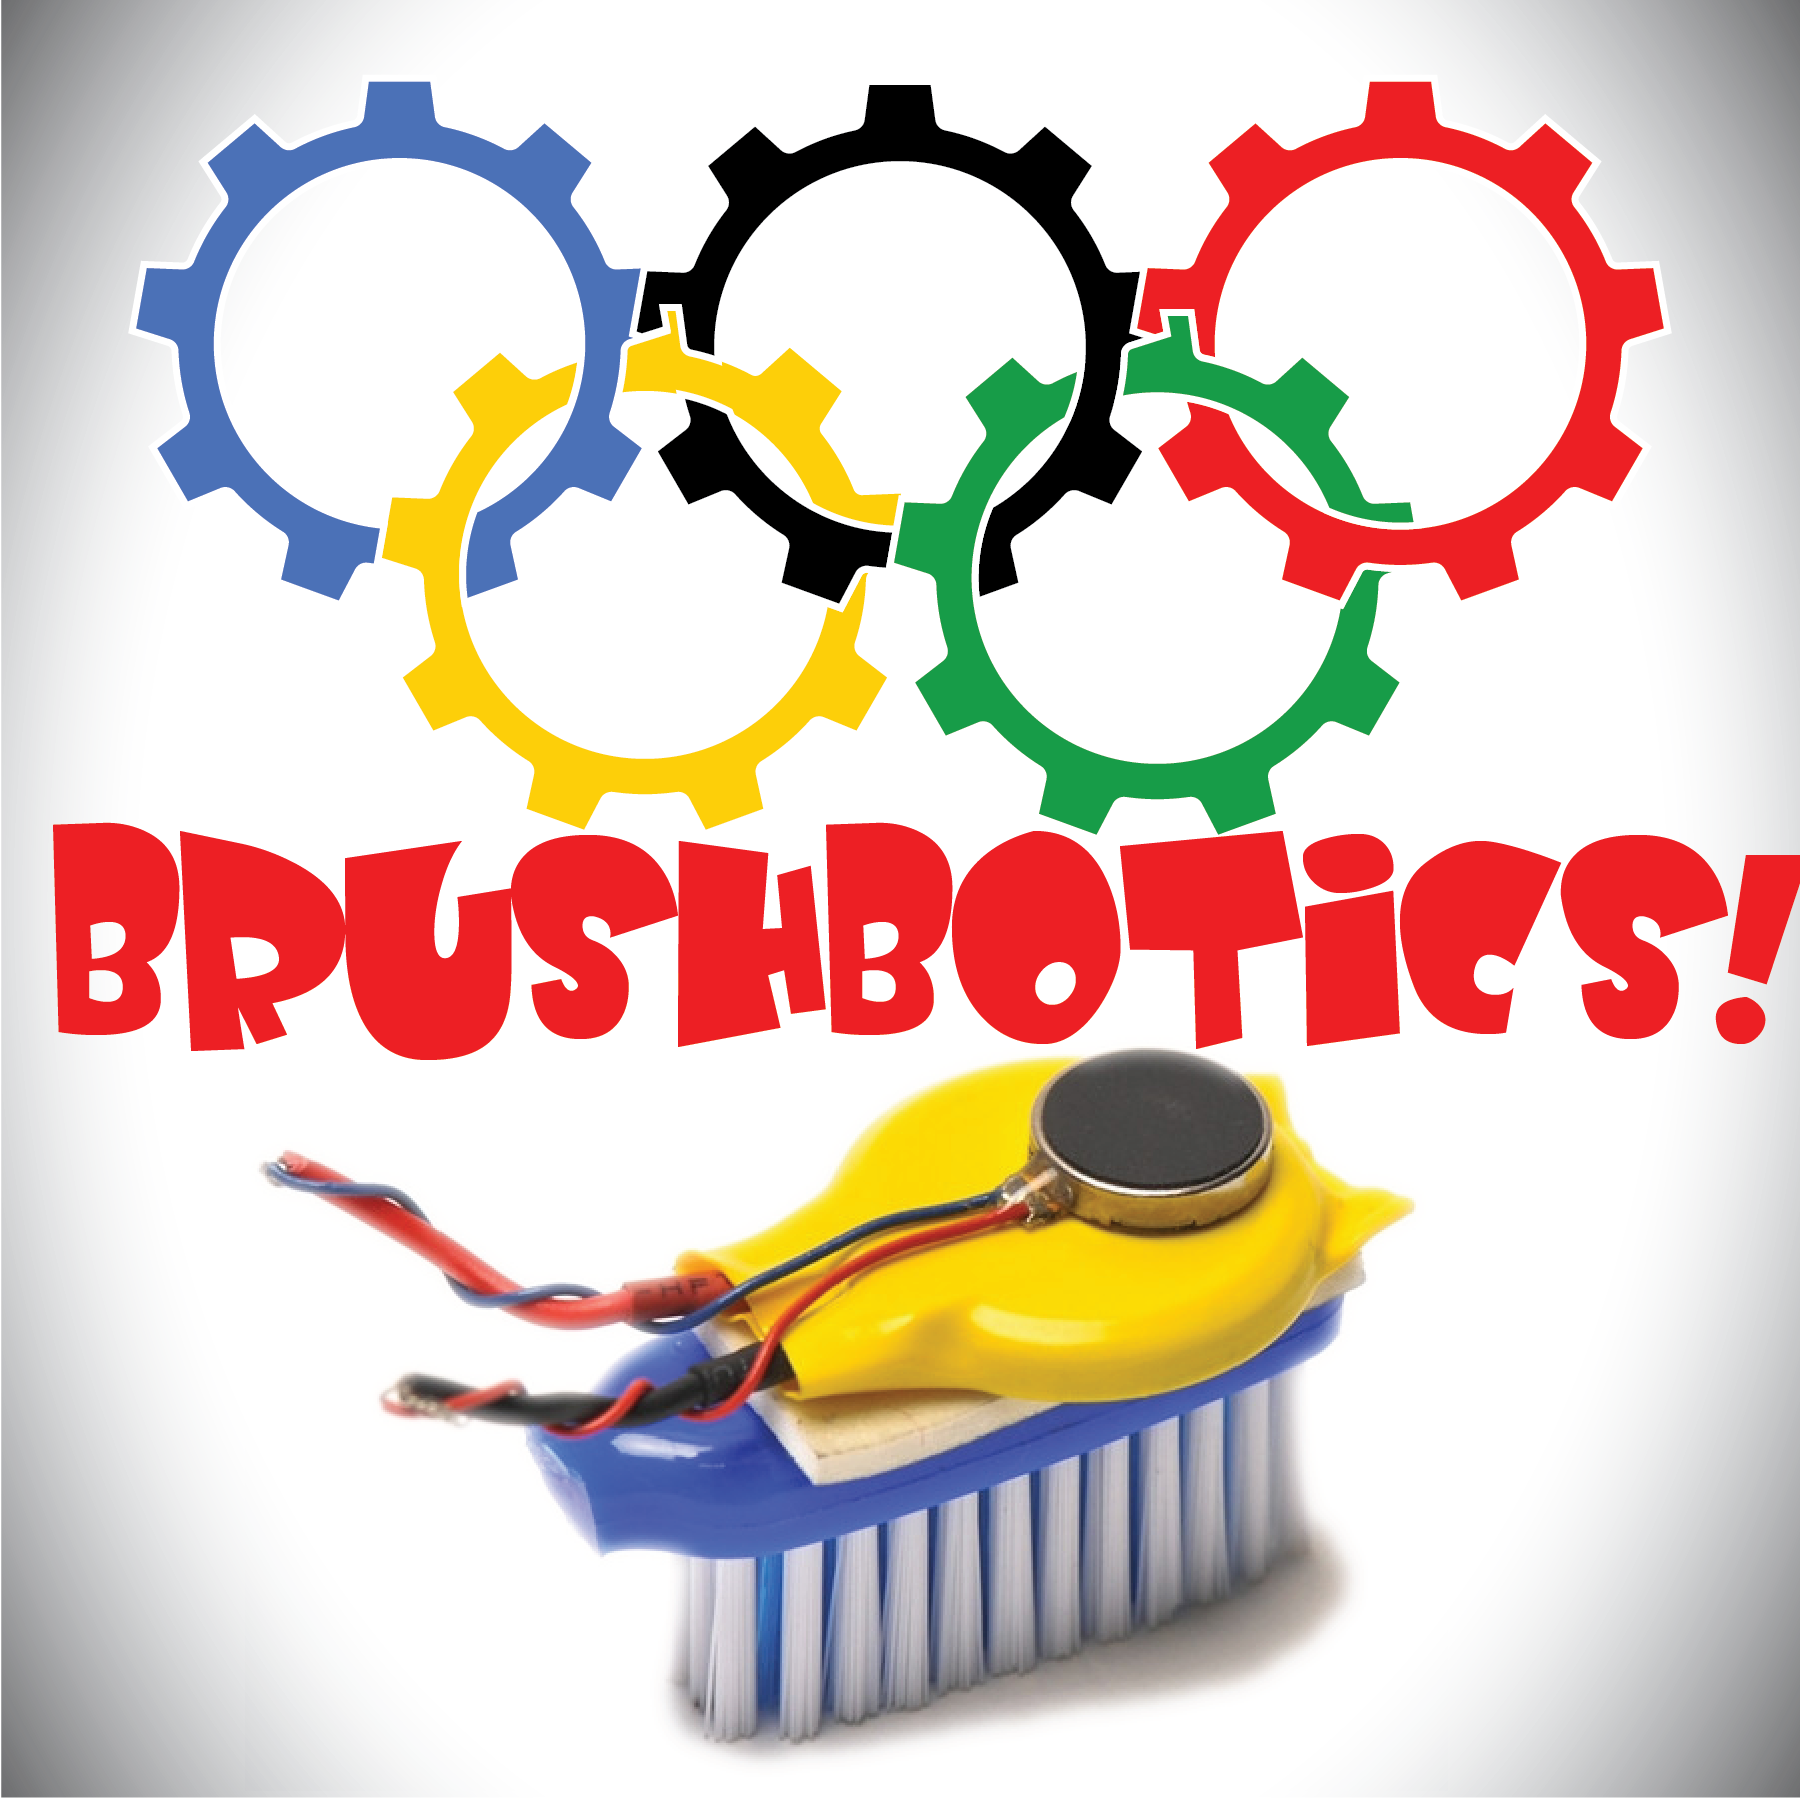 Brushbotics